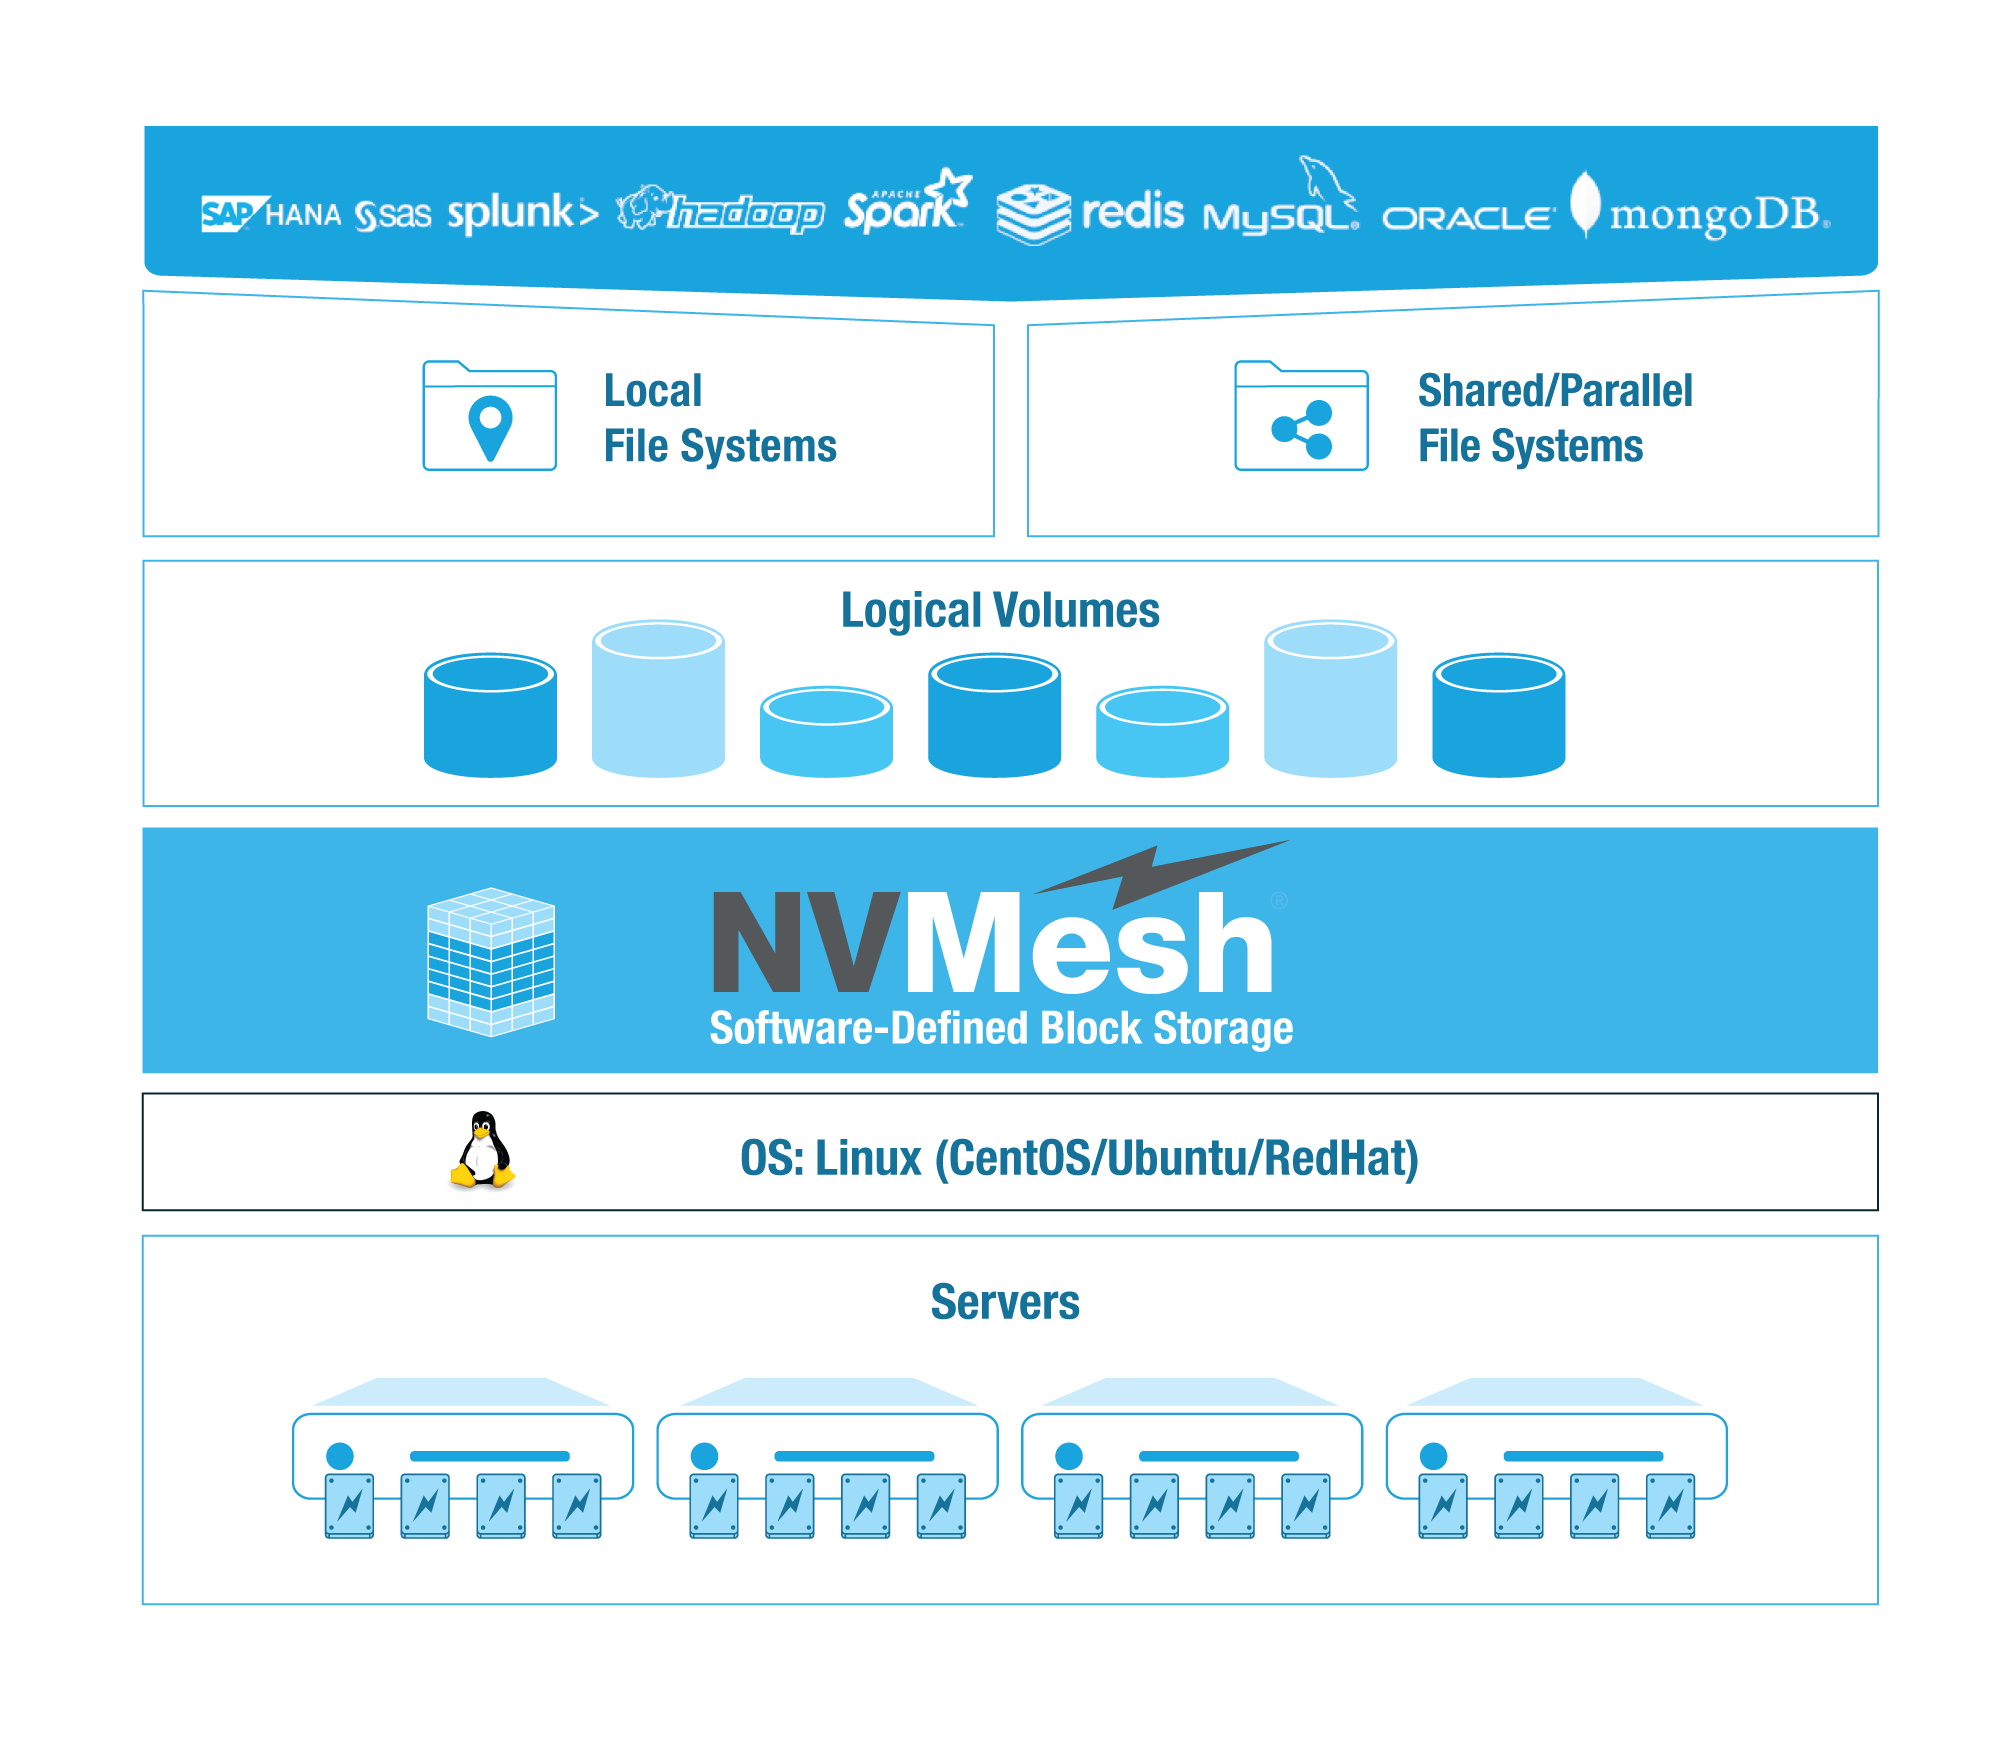 NVMesh SDS Block Storage